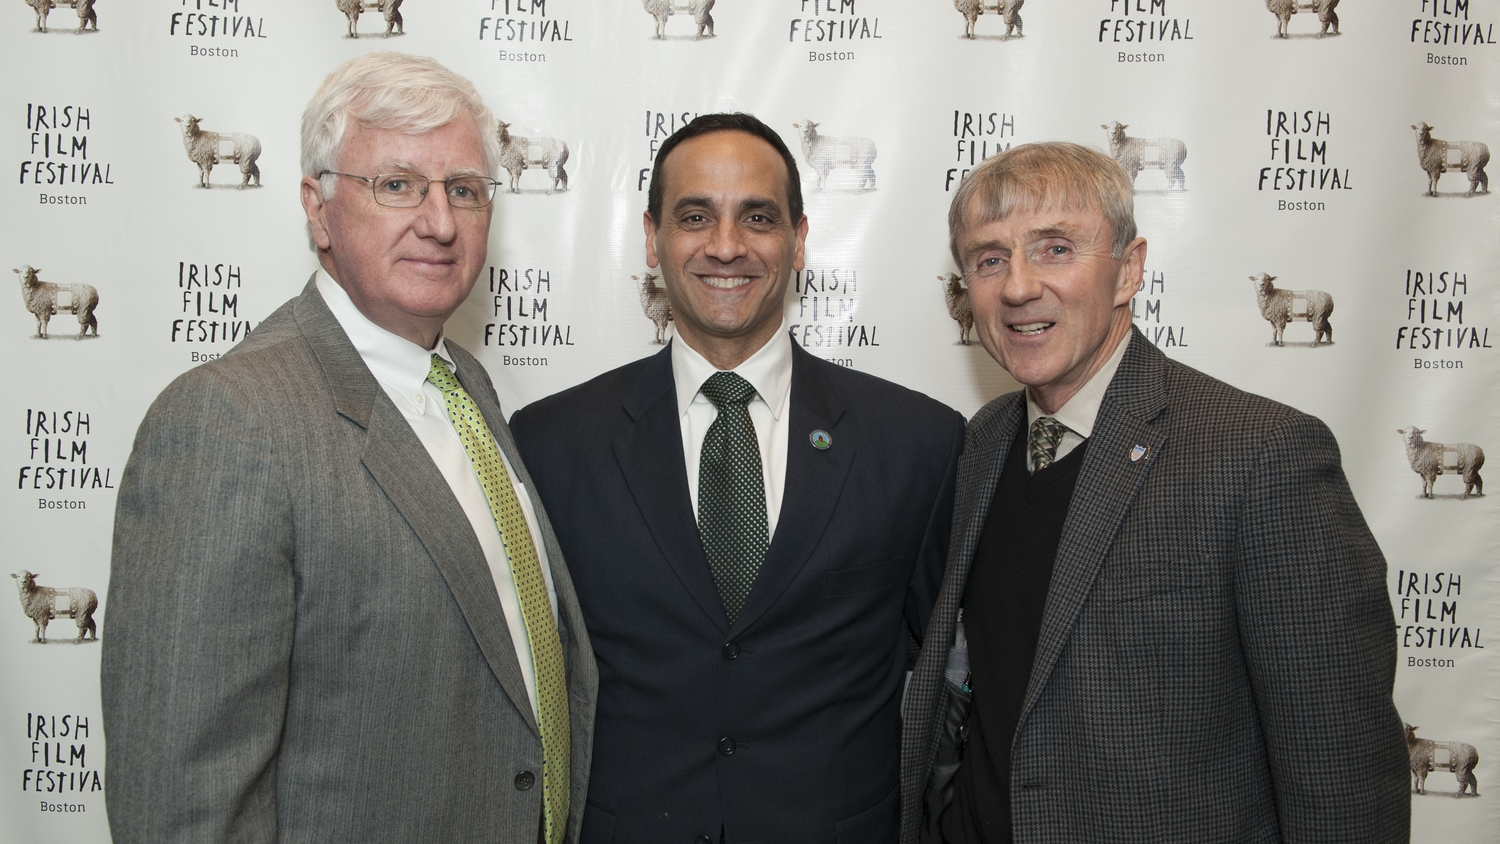 Steve Greeley, Executive Director of the American Ireland Fund, Mayor Joseph Curtatone and Alderman Jack Connelly.